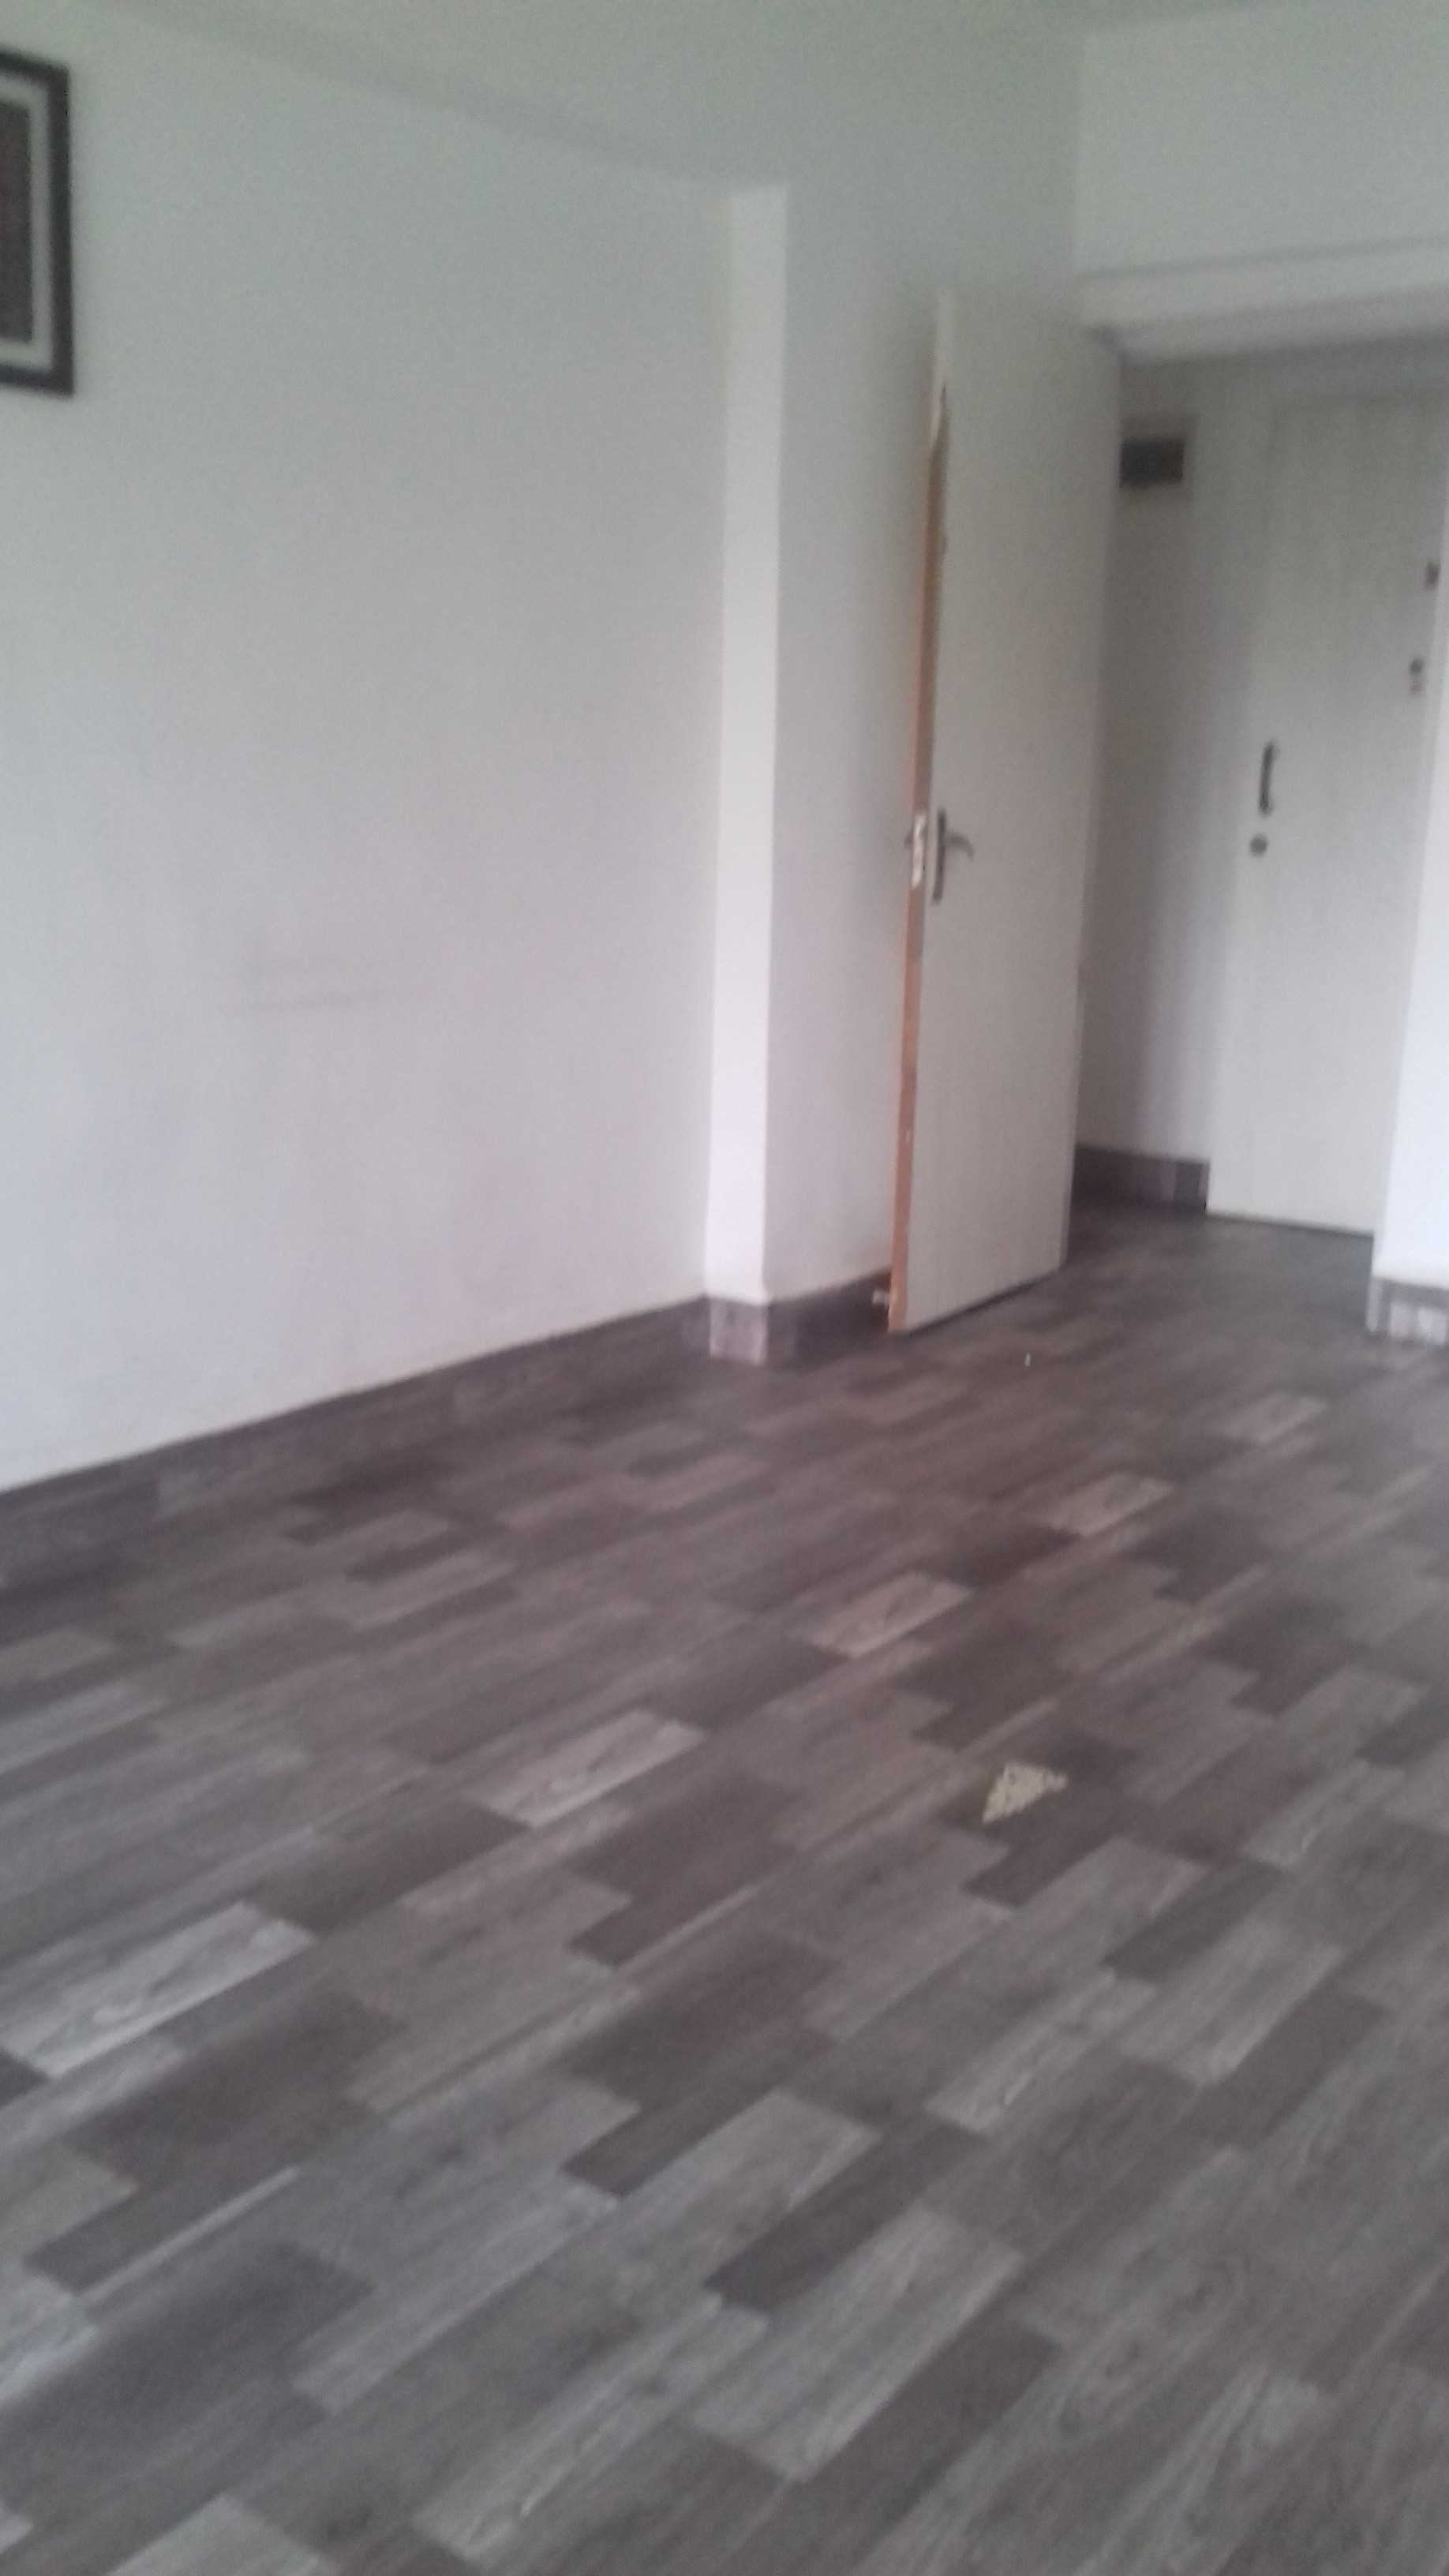 Flat on rent in Sheffield Tower, Andheri West